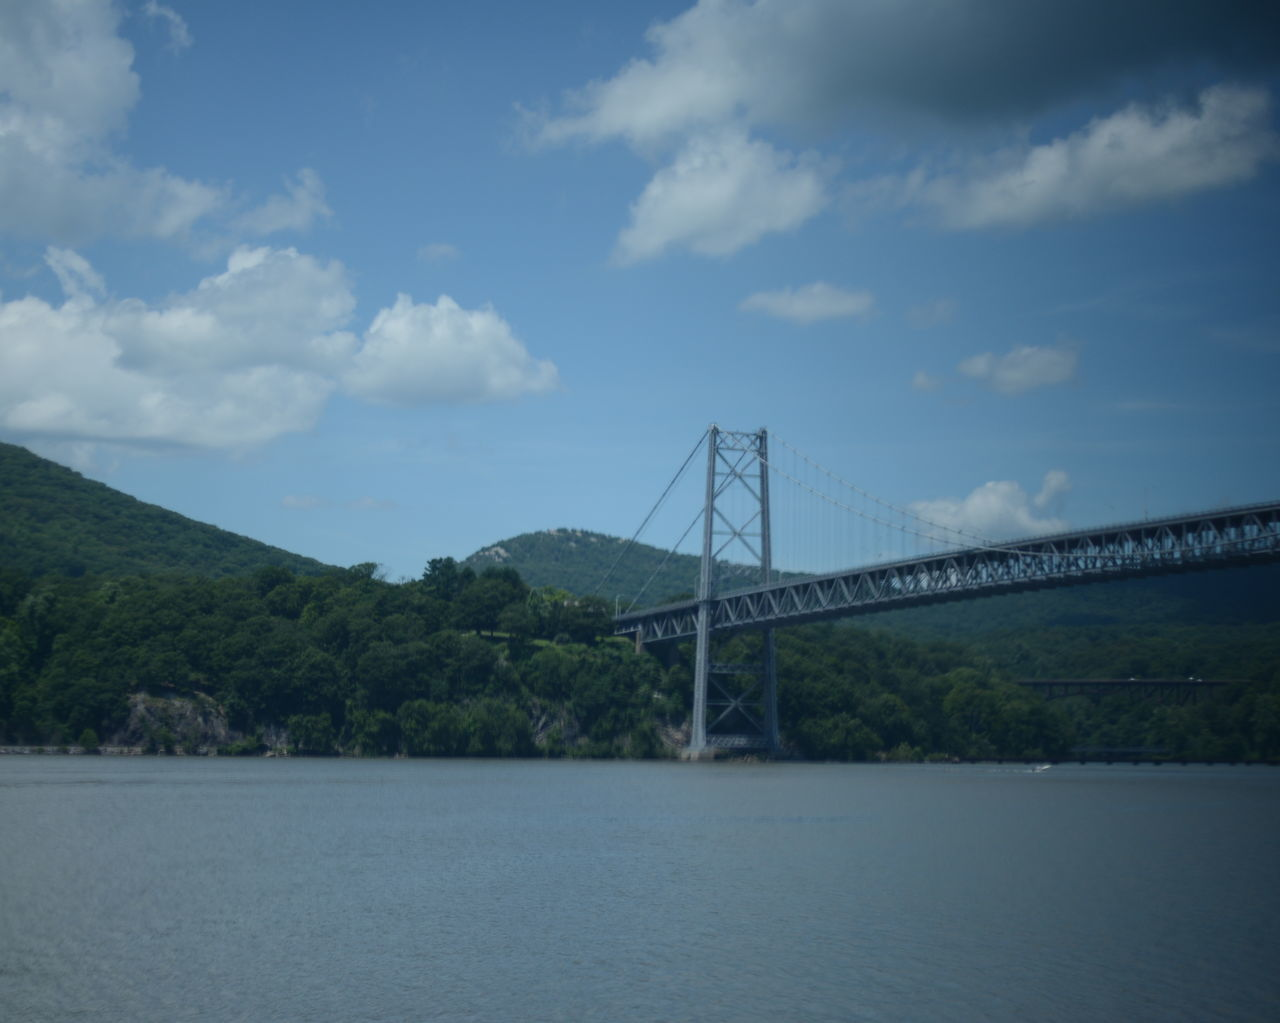 bridge - man made structure, connection, architecture, engineering, suspension bridge, river, built structure, no people, transportation, sky, outdoors, nature, water, bridge, travel, waterfront, day, travel destinations, cloud - sky, beauty in nature, chain bridge